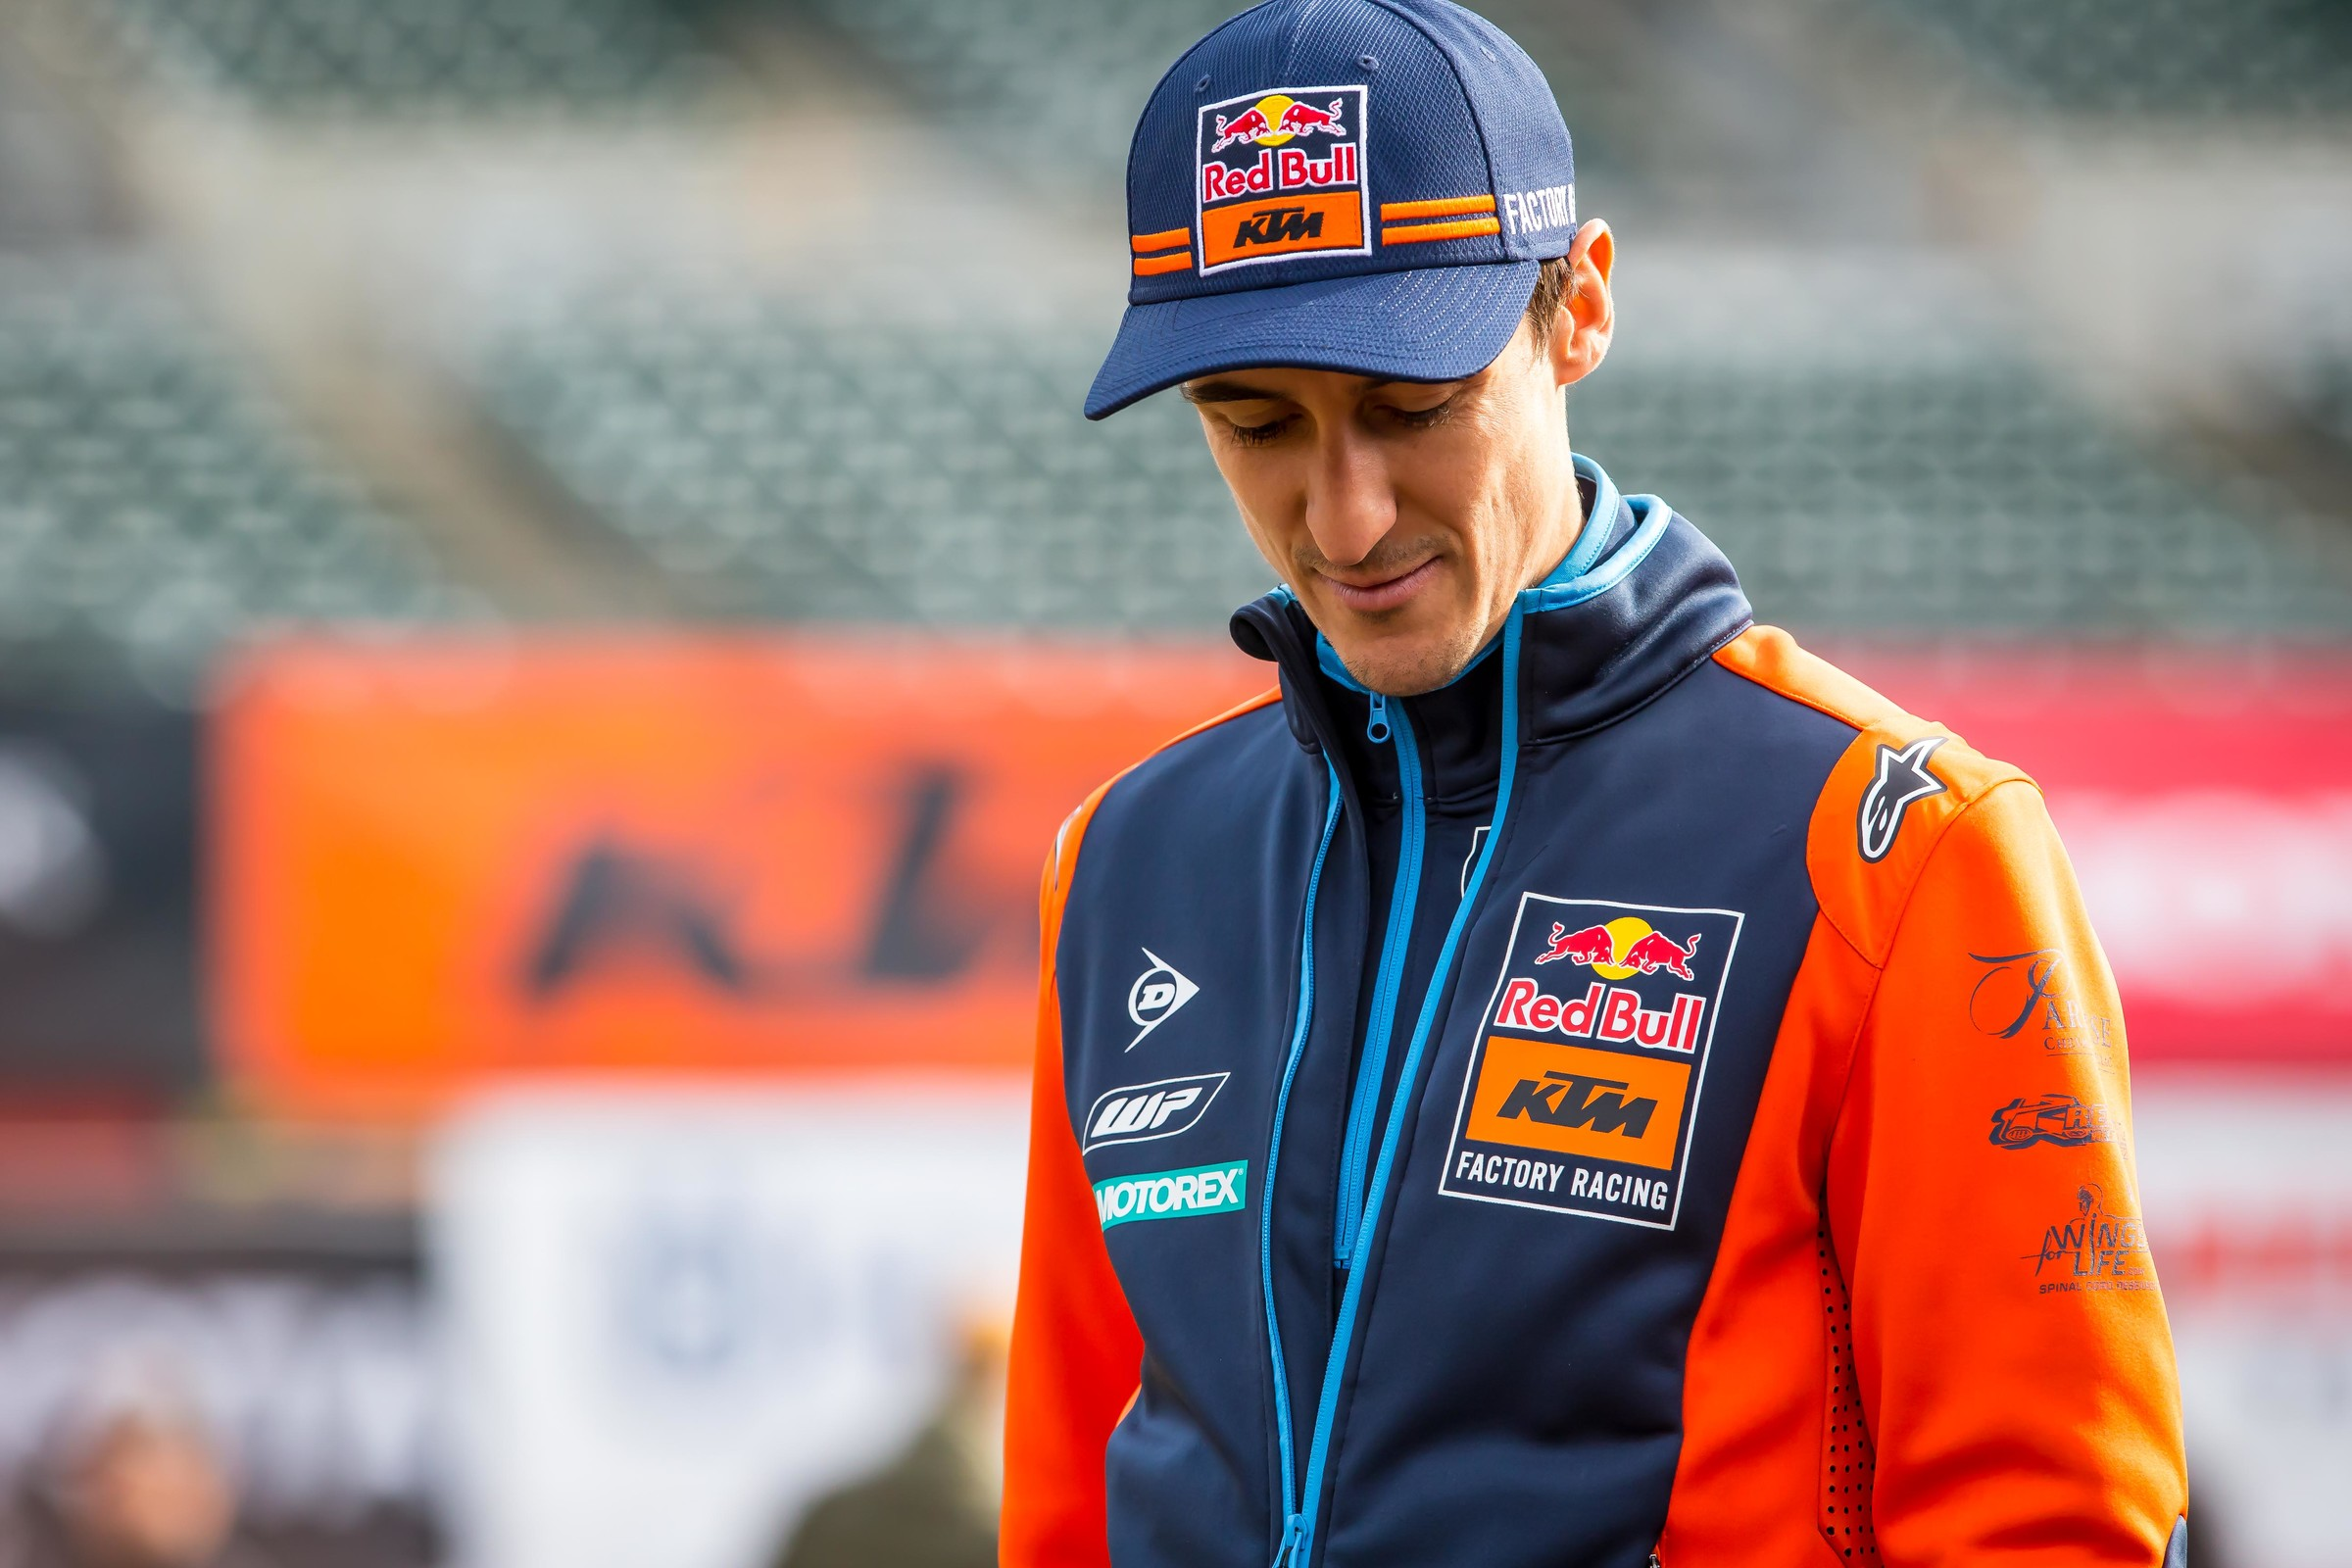 Musquin finished second overall behind Webb at Anahiem 2, the first Triple Crown of the year, before finishing second to Webb again in the main event at Oakland. But he was arguably the faster man at Oakland.